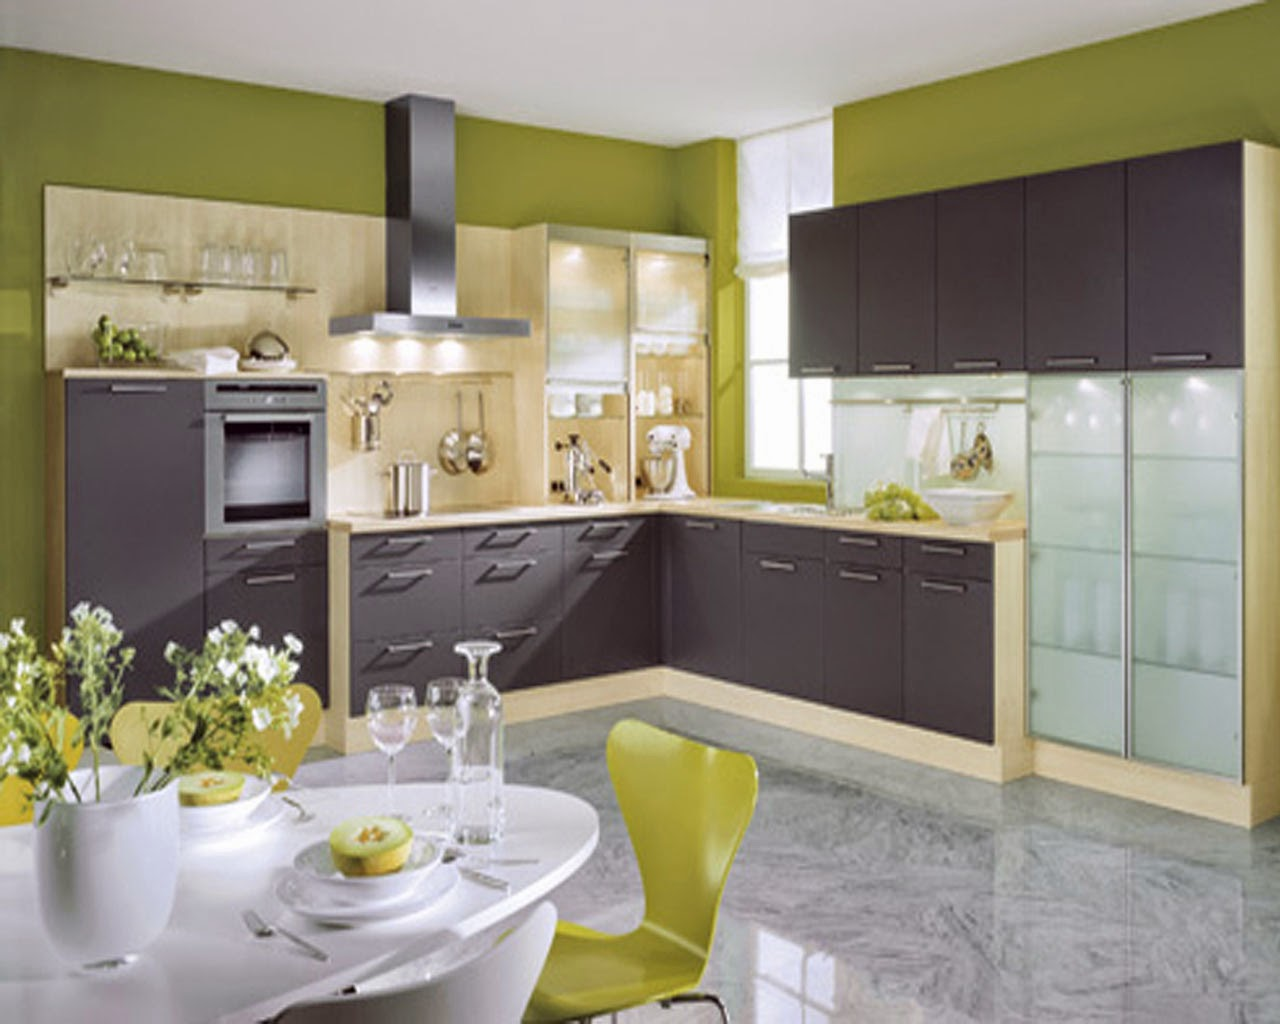 Kitchen designing ideas 2014 freshnist design for Kitchen design ideas pictures